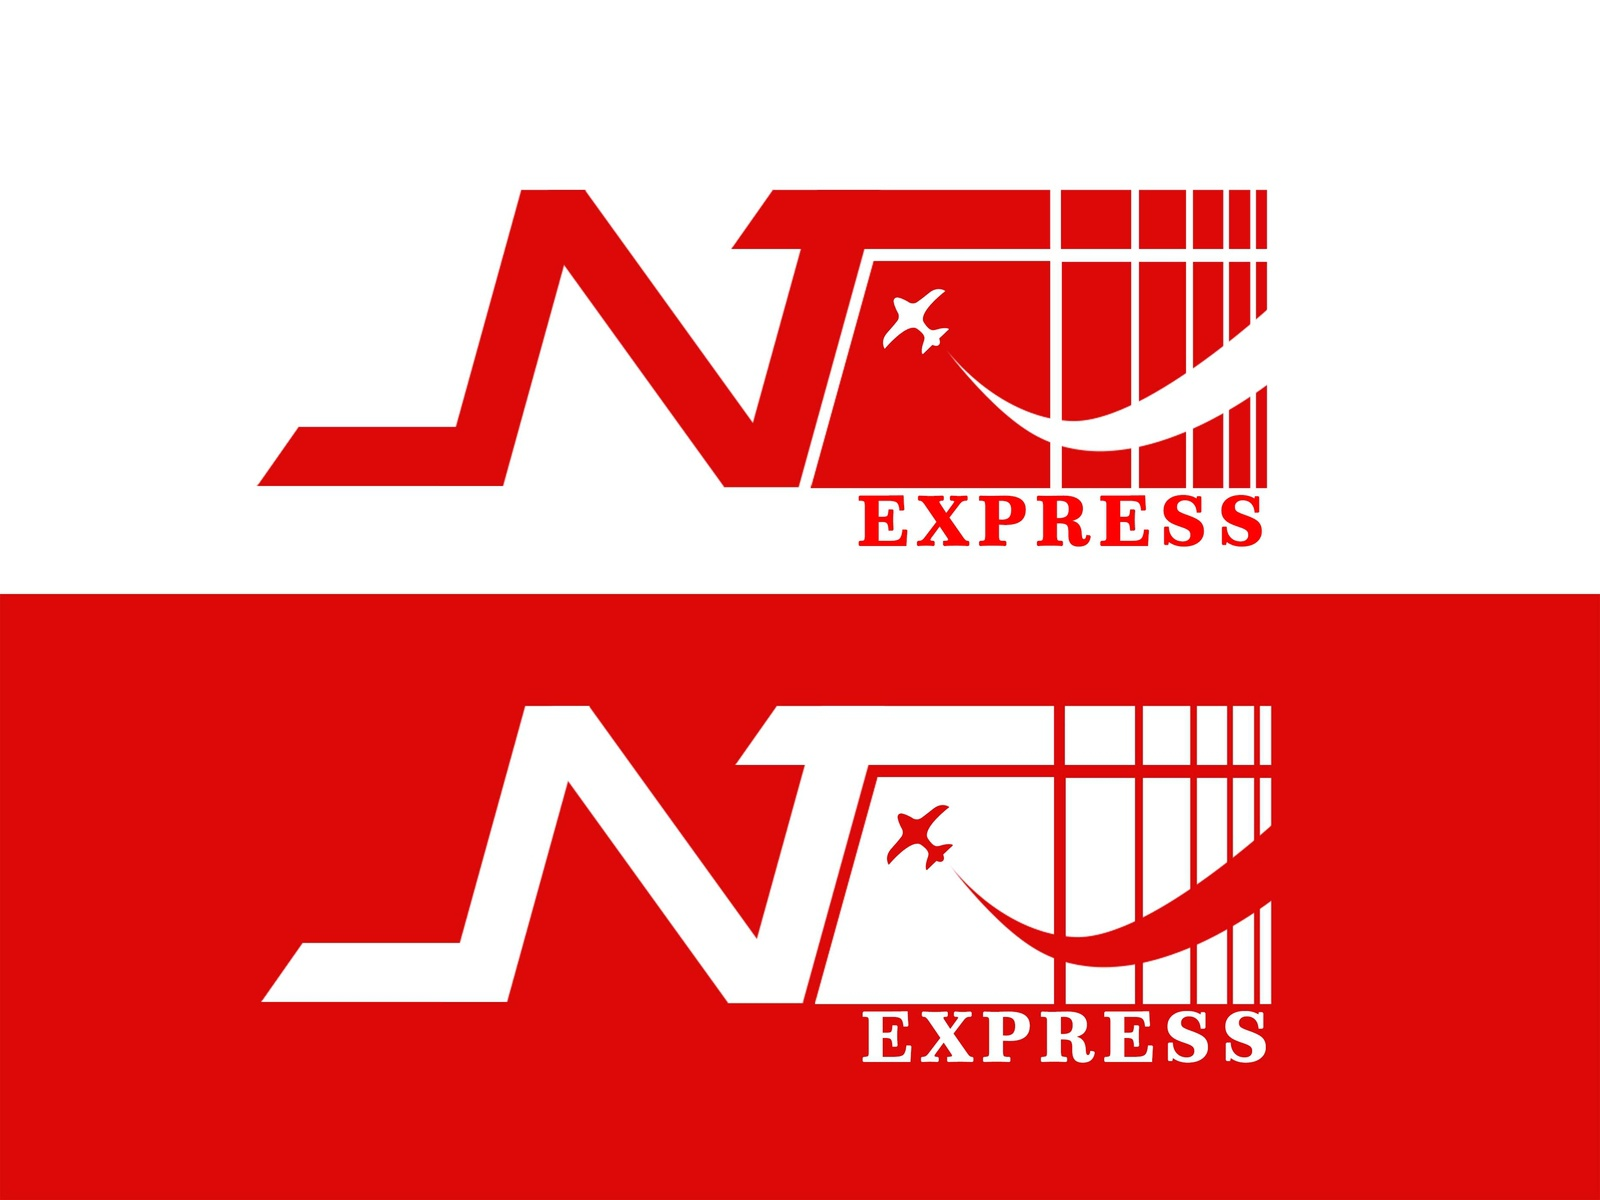 JnT Logo Design Template by Arma Yoga on Dribbble